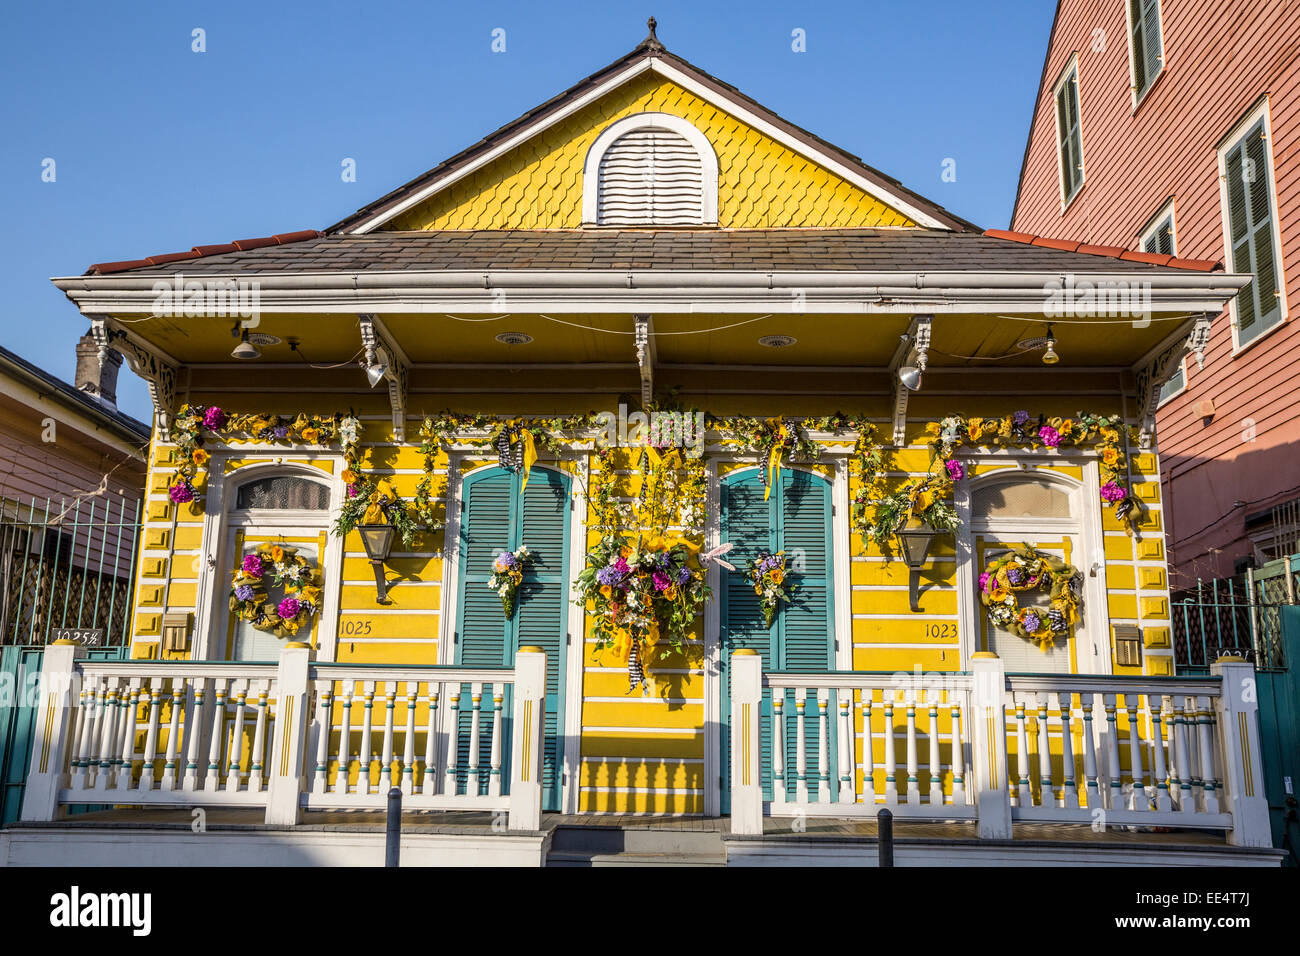 french quarter new orleans flowers stockfotos french quarter new orleans flowers bilder alamy. Black Bedroom Furniture Sets. Home Design Ideas